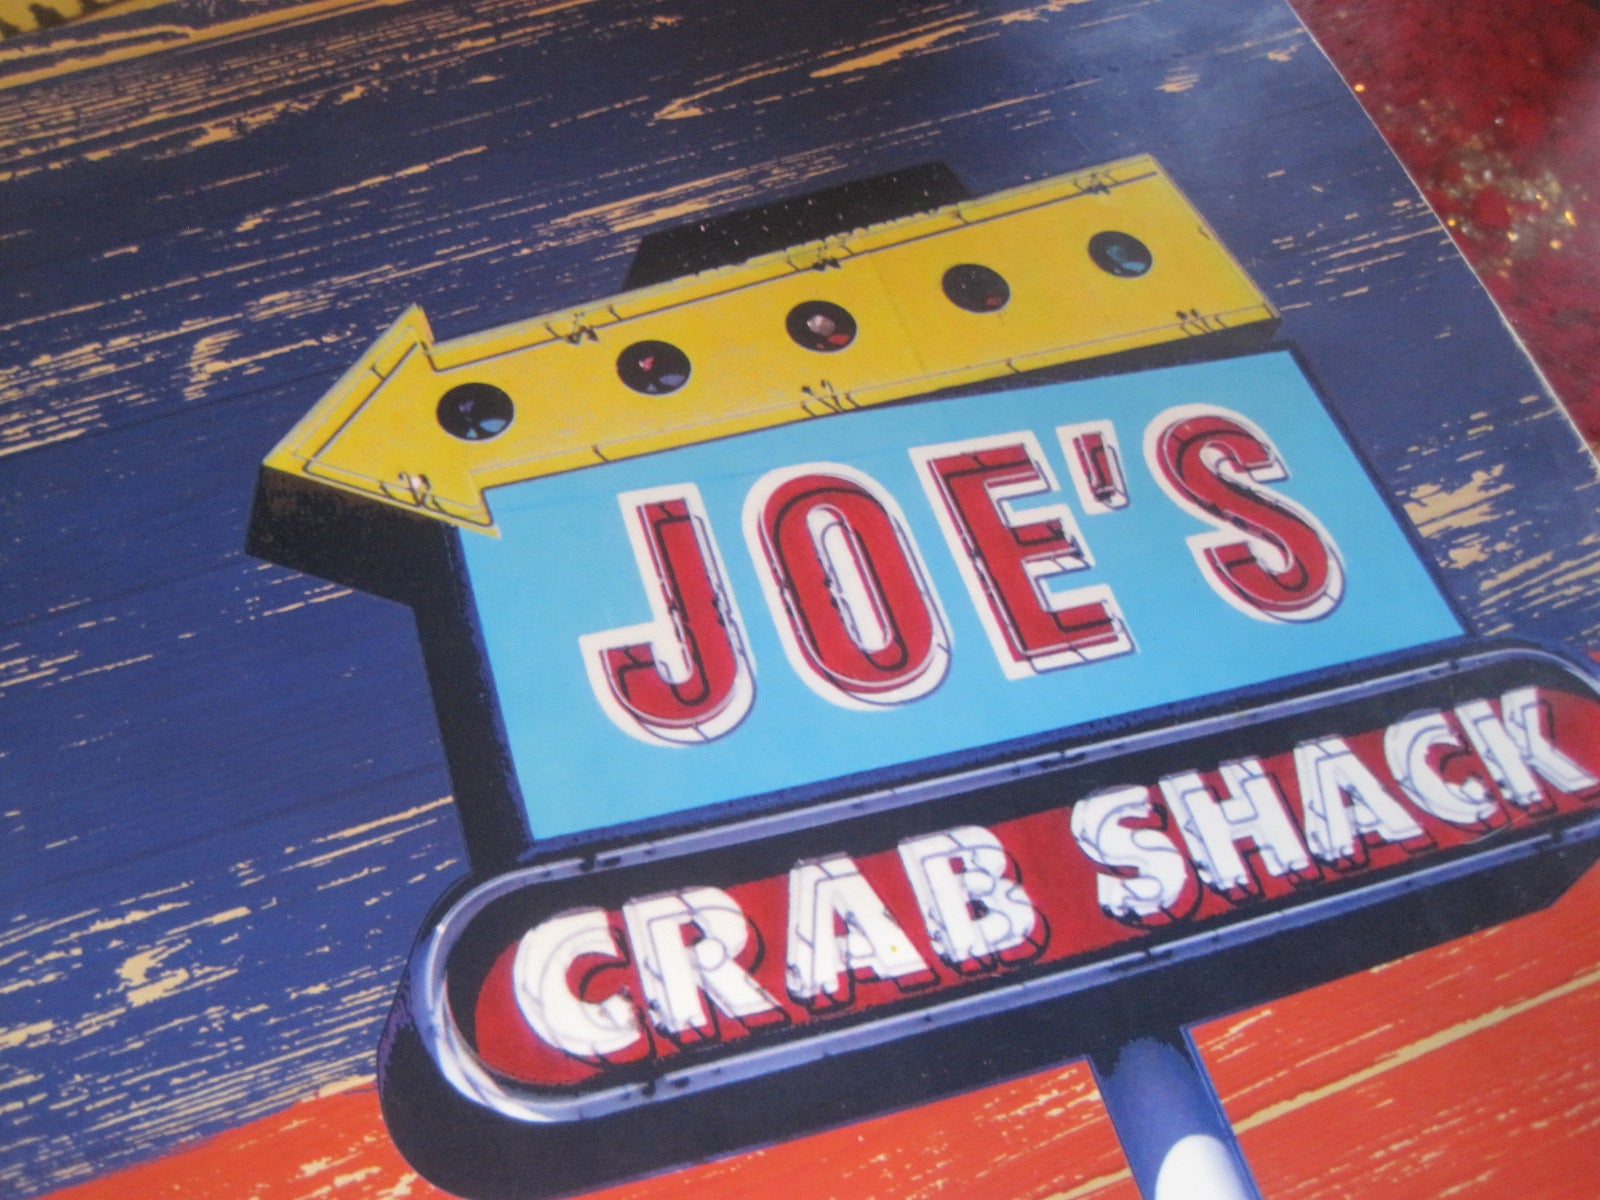 Chapa de matriculación en Joe's Crab Shack